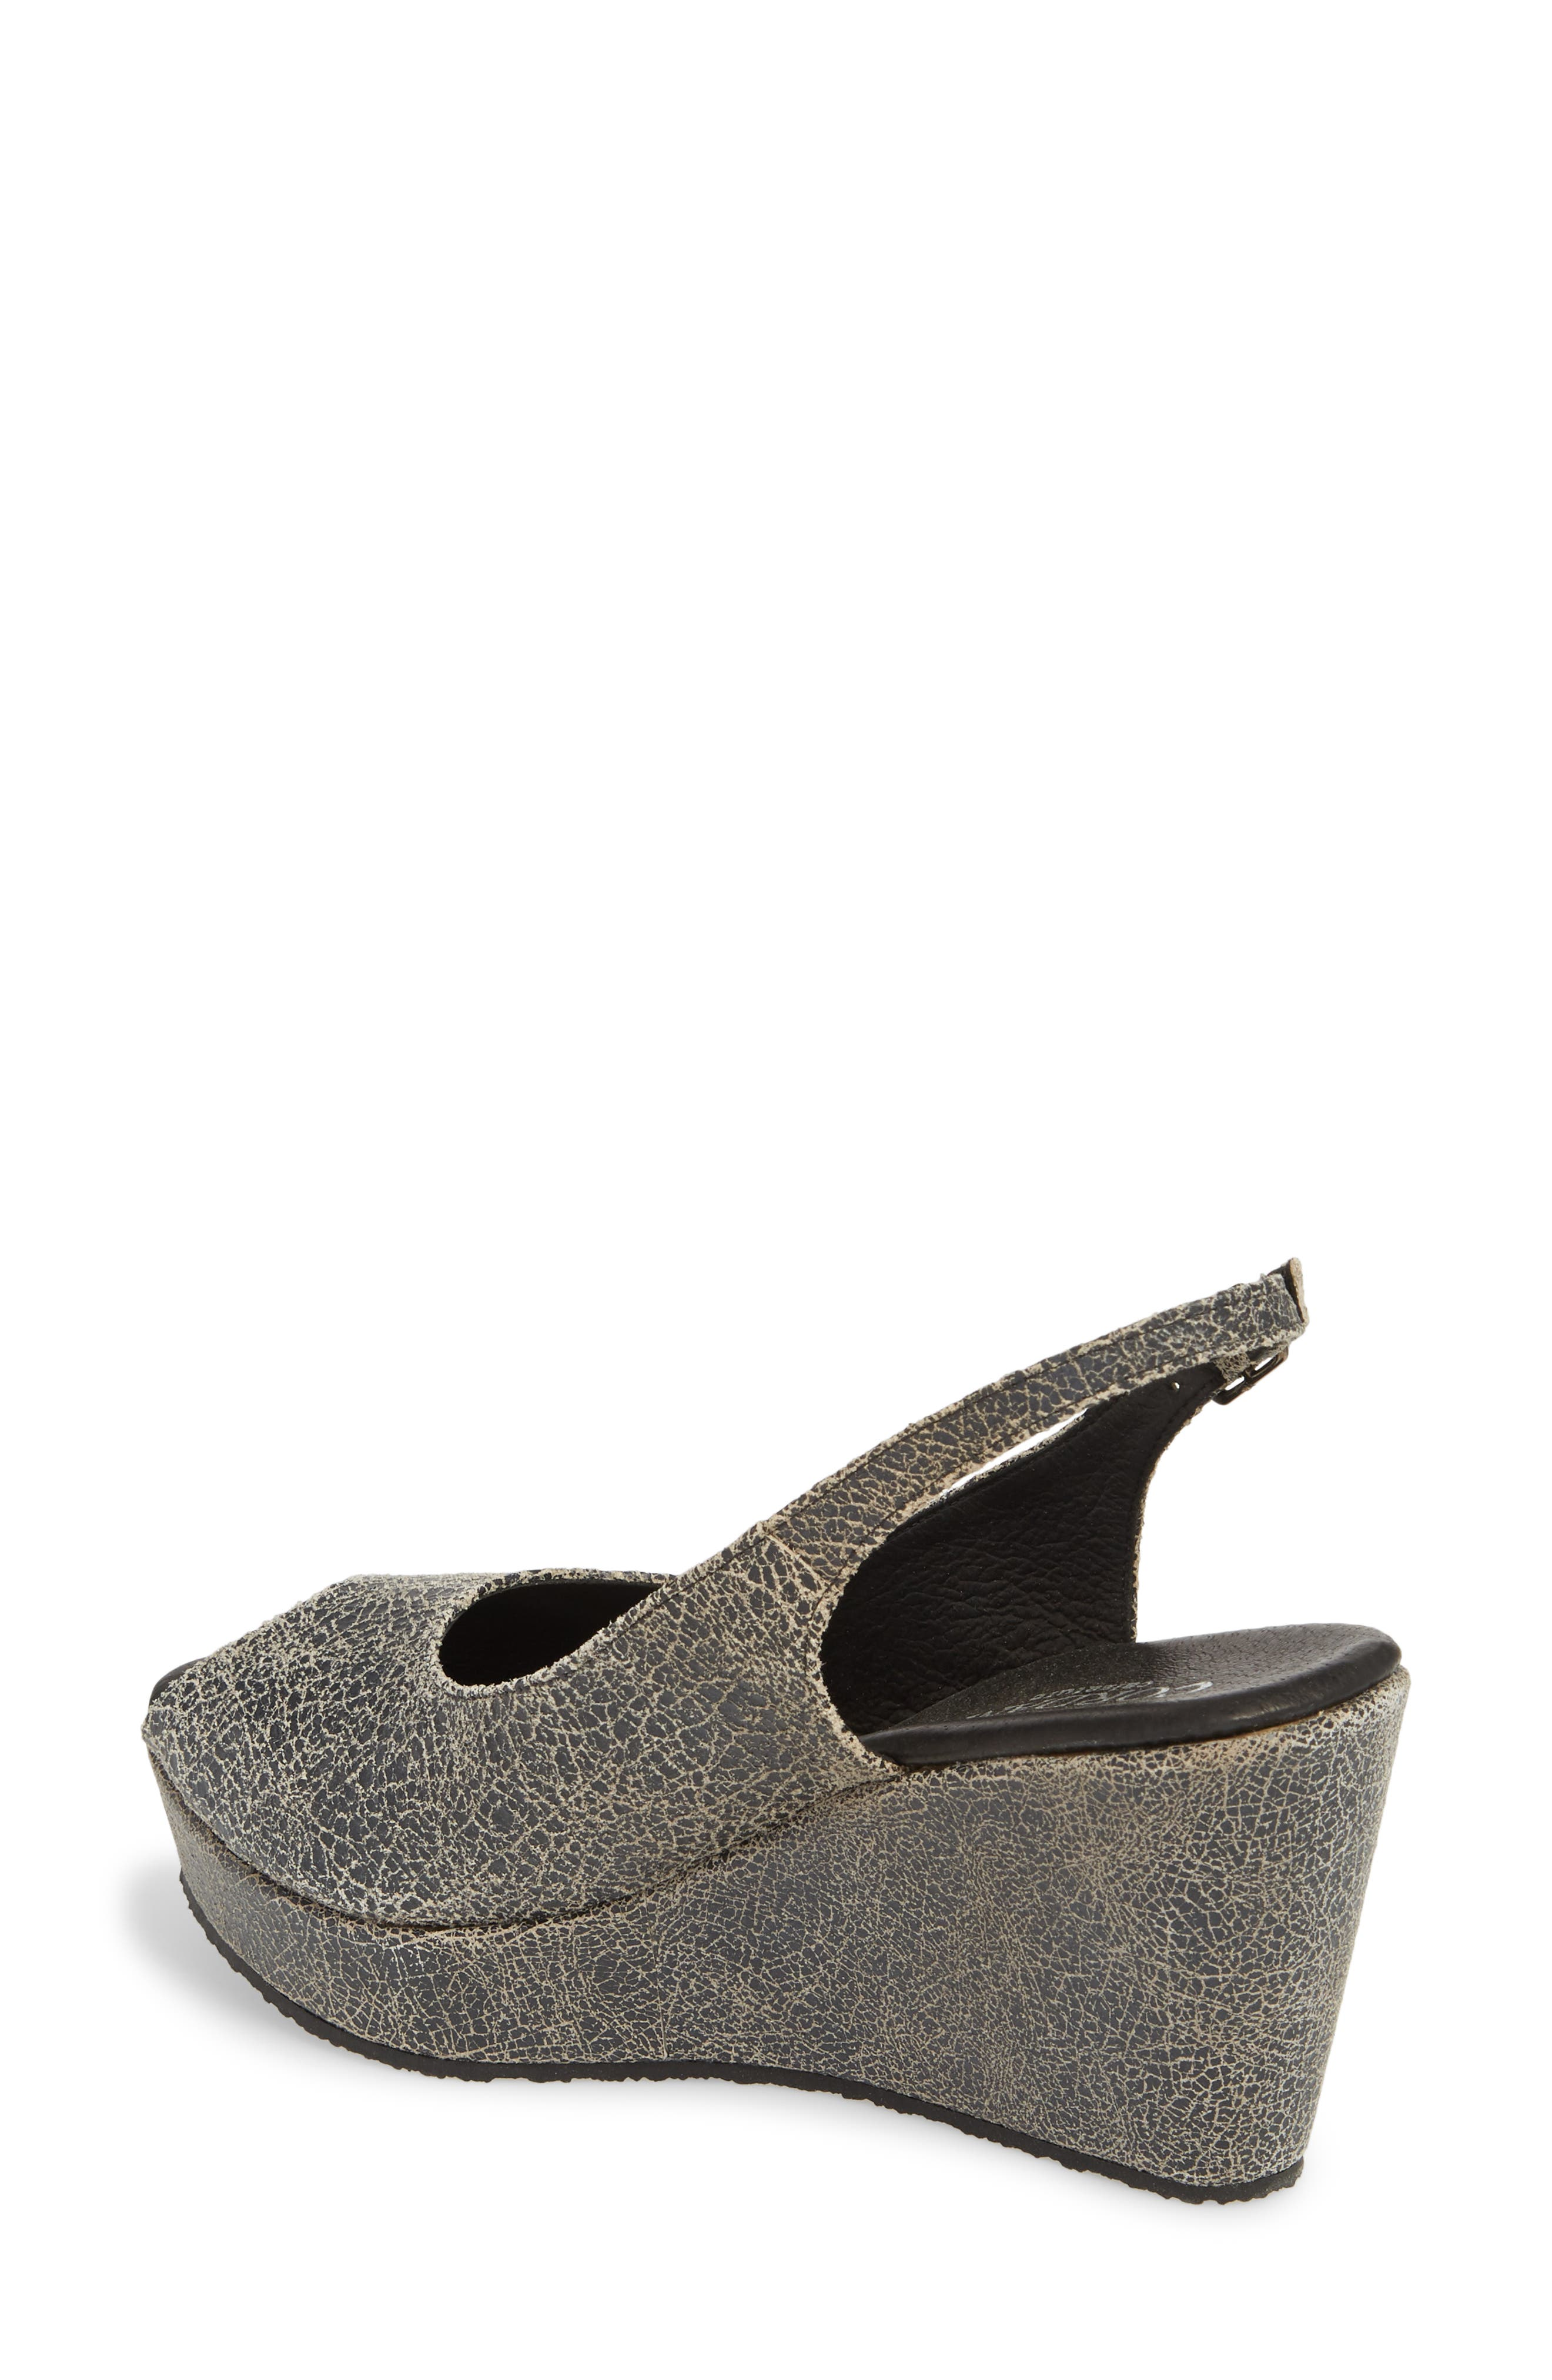 Fabrice Slingback Platform Sandal,                             Alternate thumbnail 2, color,                             GREY CRACKLE LEATHER